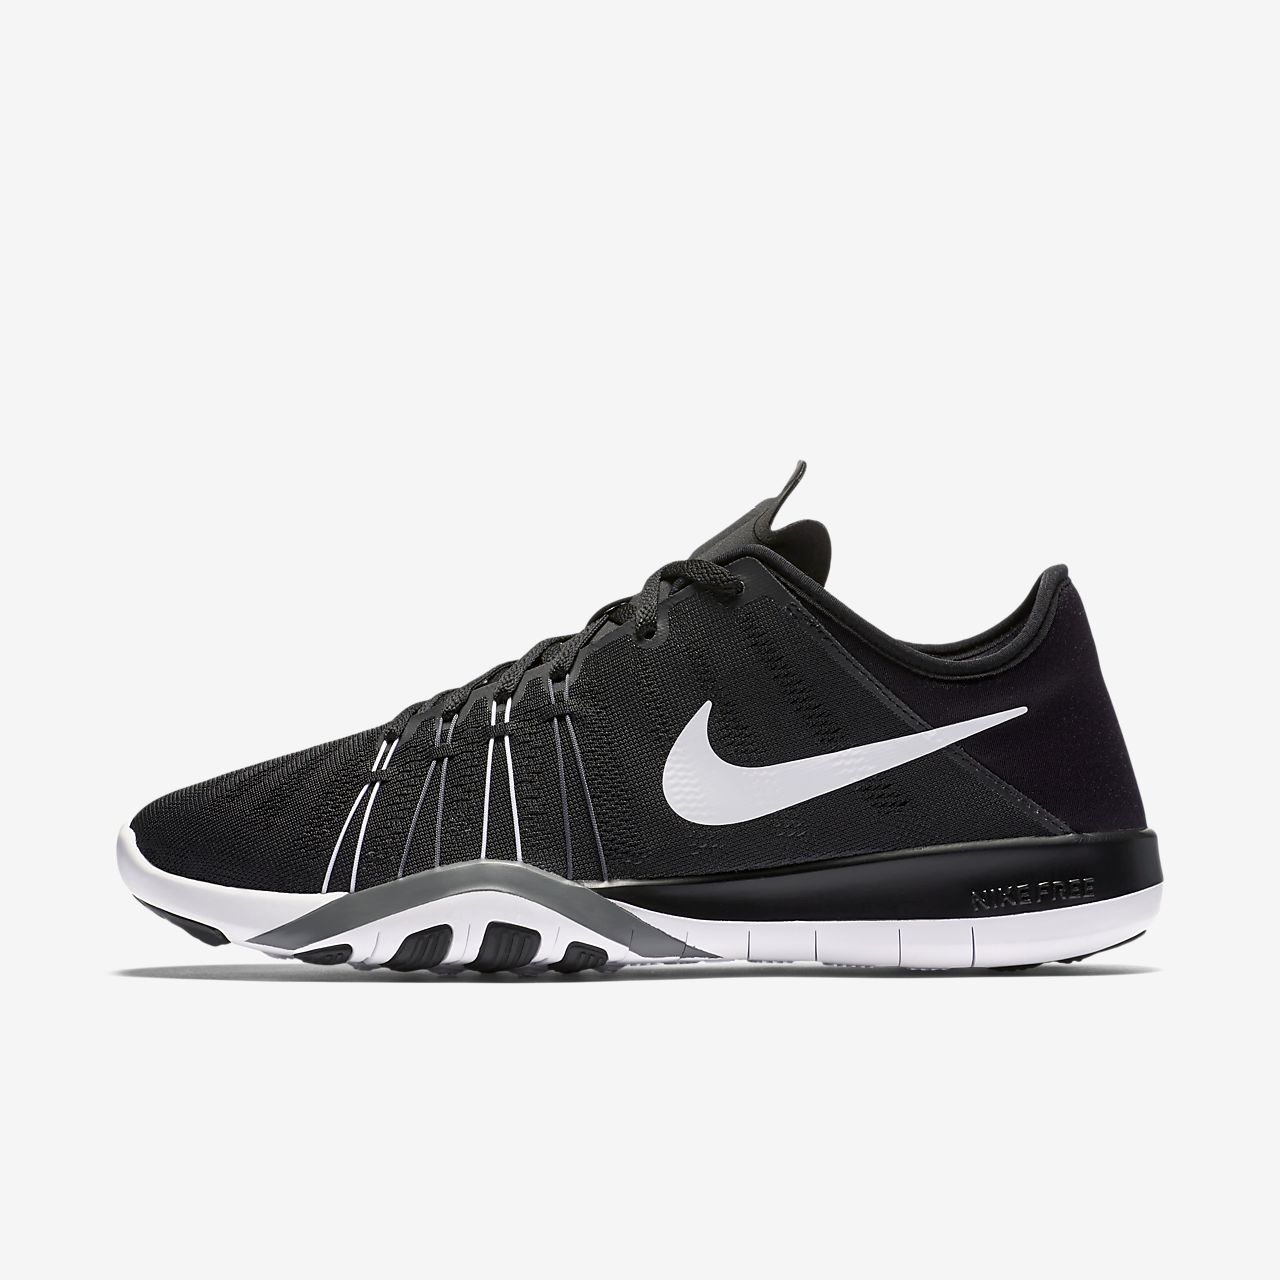 ... Nike Free TR 6 Women's Training Shoe